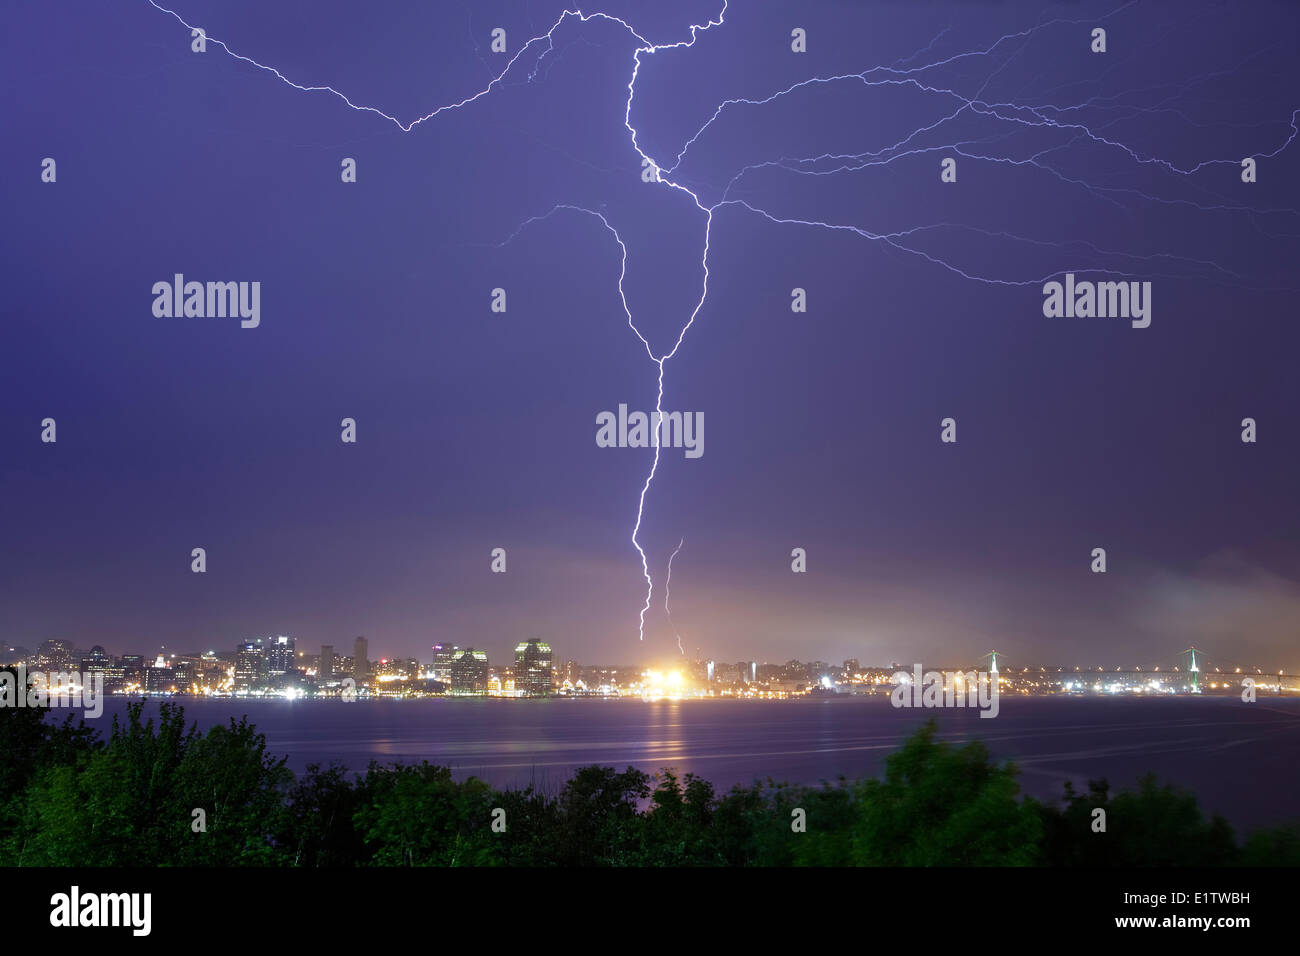 A bolt lightning fills the sky over Halifax Harbour and strikes a communications tower in Halifax, Nova Scotia - Stock Image